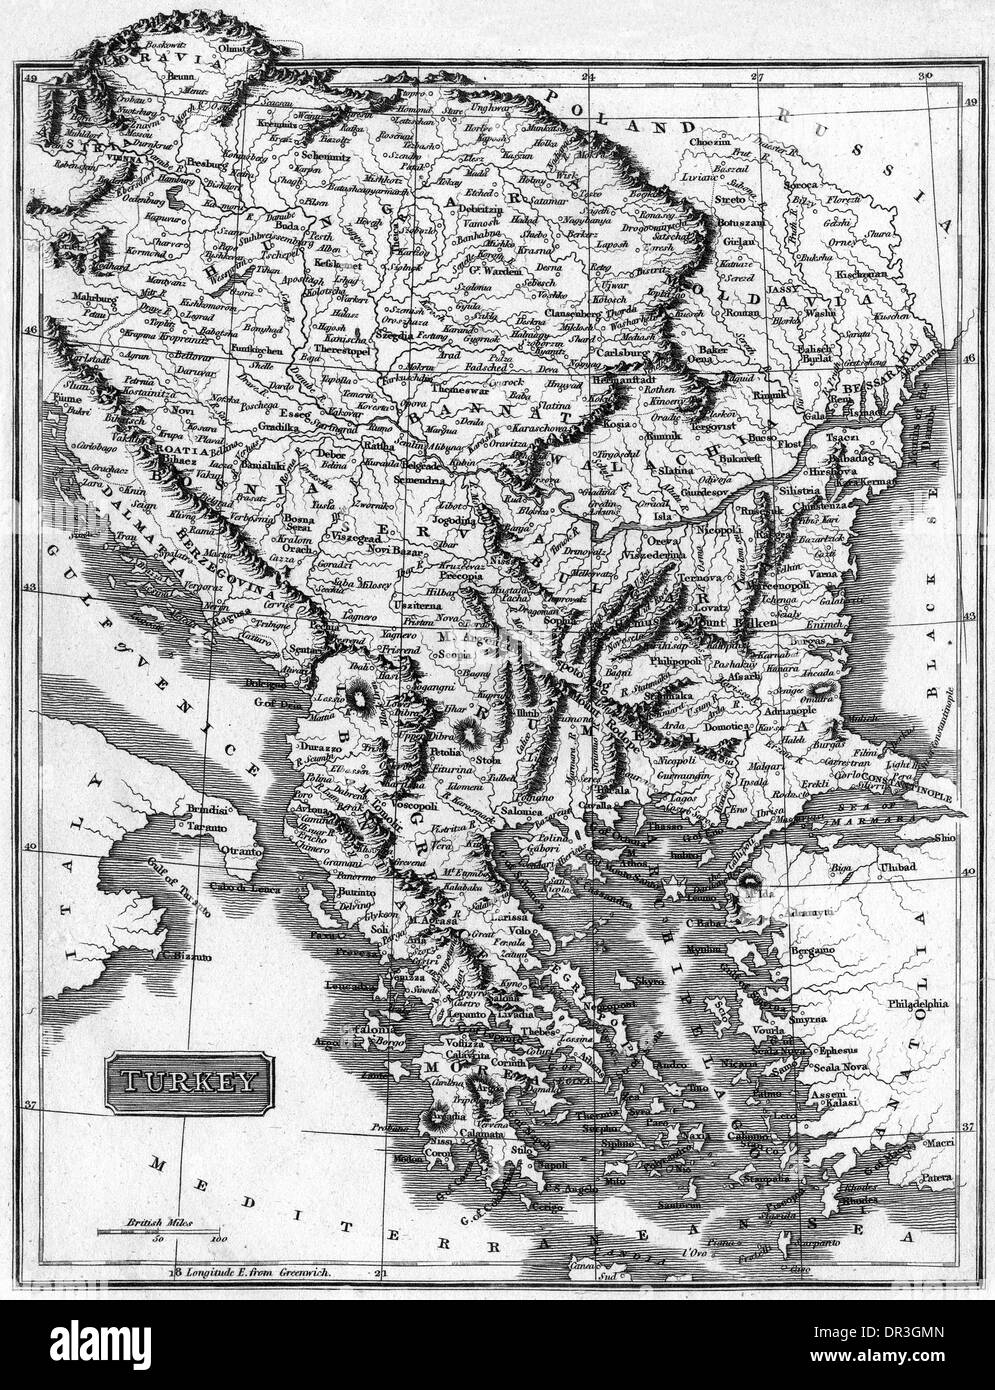 Balkans Map Black and White Stock Photos & Images - Alamy on map of eurasia, map of albania, map of haiti, map of yugoslavia, map of spain, map of middle east, map of montenegro, map of ottoman empire, map of europe, map of caucasus, map of crete, map of ukraine, map of bulgaria, map of pyrenees, map of greece, map of arabian peninsula, map of croatia, map of iberian peninsula, map of moldova, map of baltics,